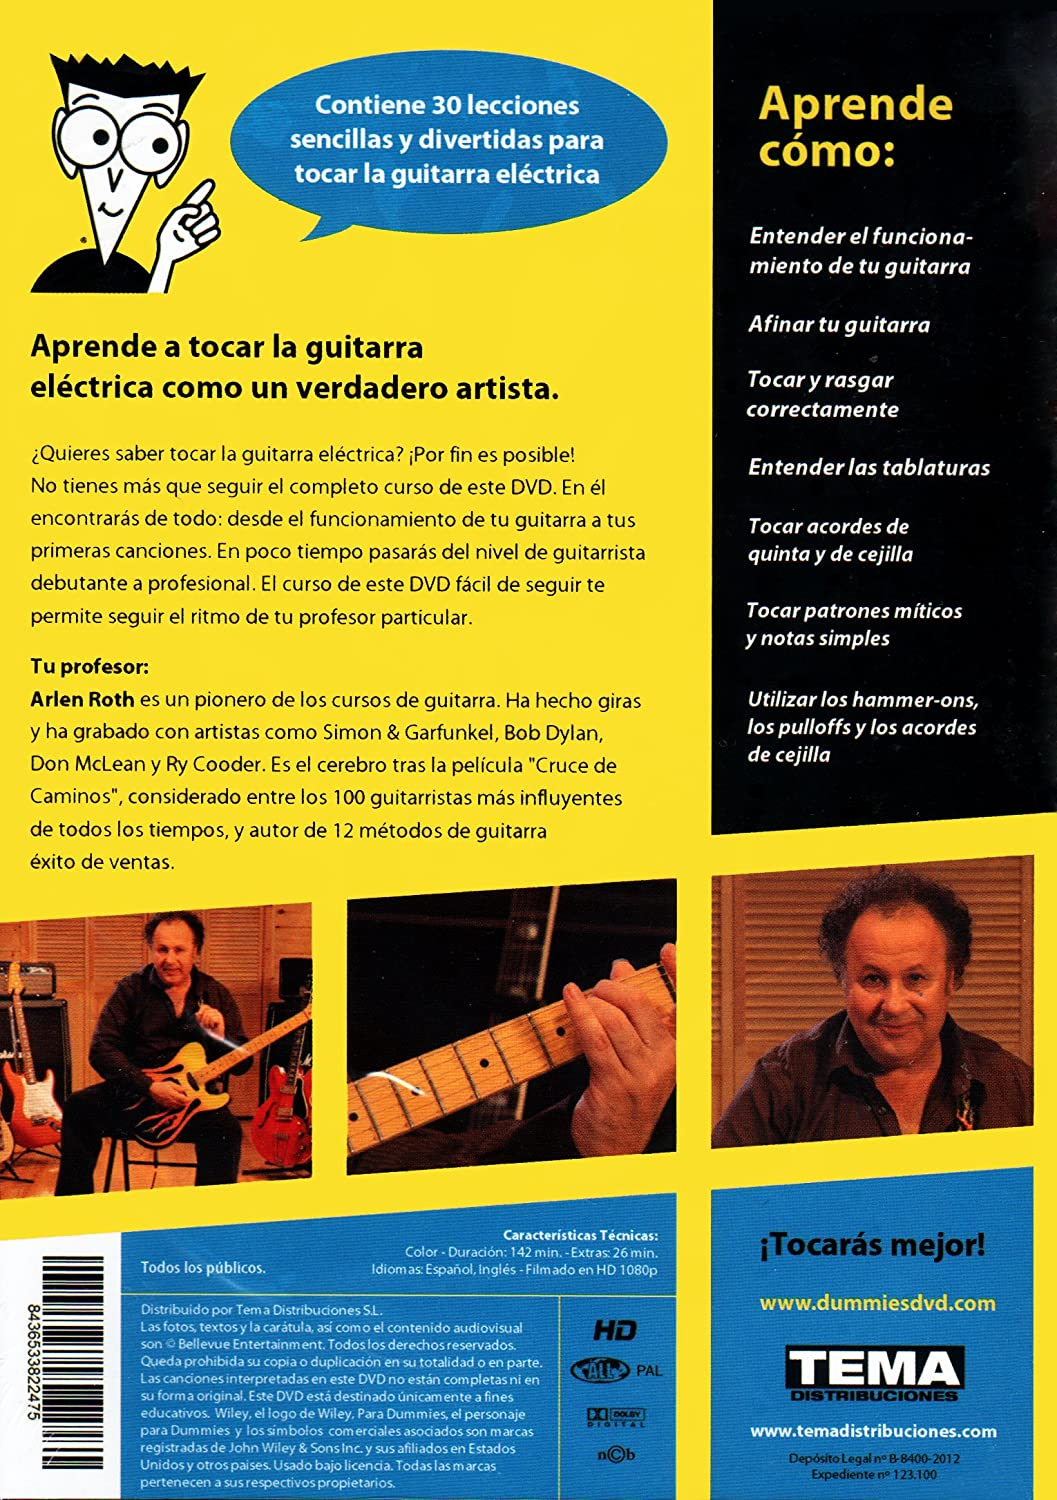 GUITARRA ELECTRICA para Dummies [DVD]: Amazon.es: Arlen Roth, Andrea Ambados: Cine y Series TV